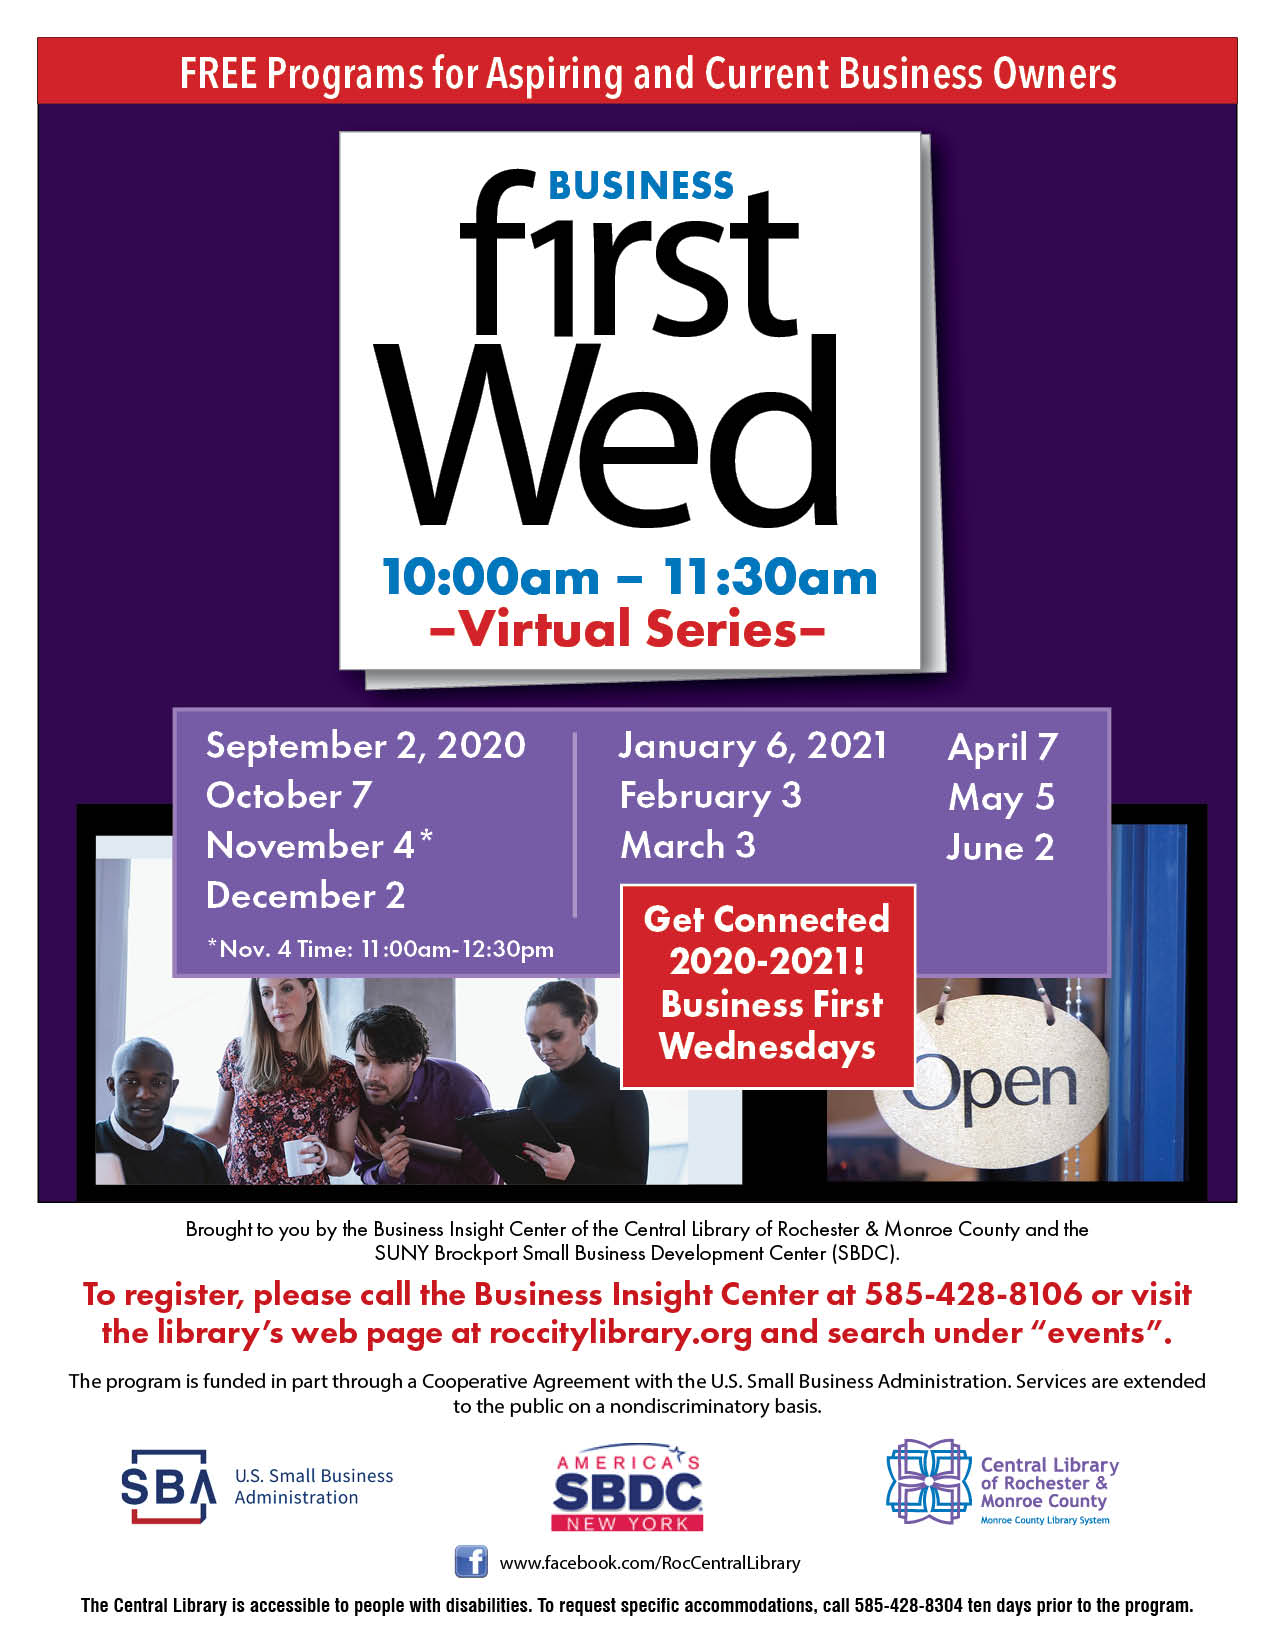 Business First Wednesday - Advanced Technology Funding